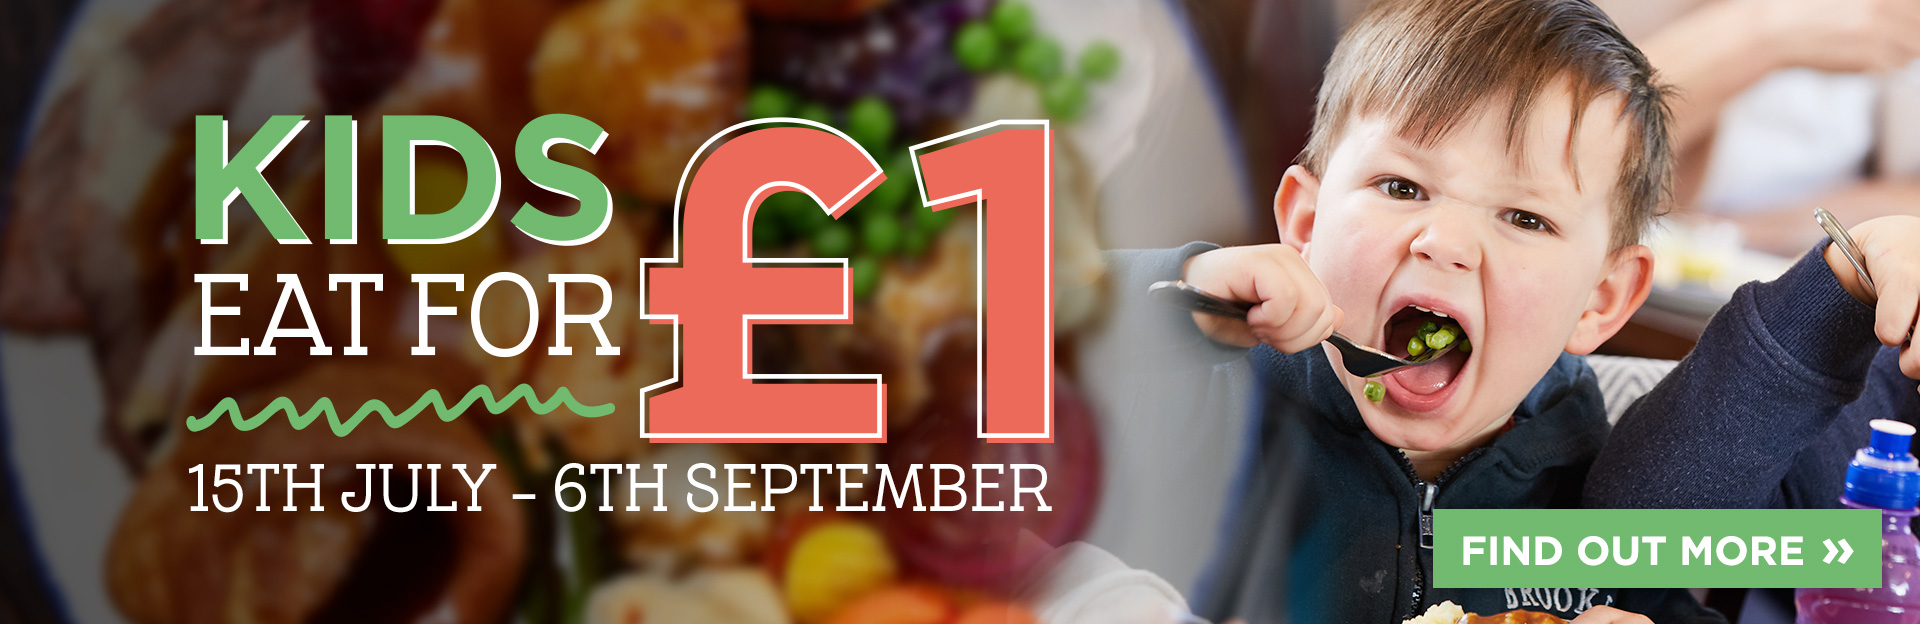 Kids Eat for £1 at The Farmers Arms